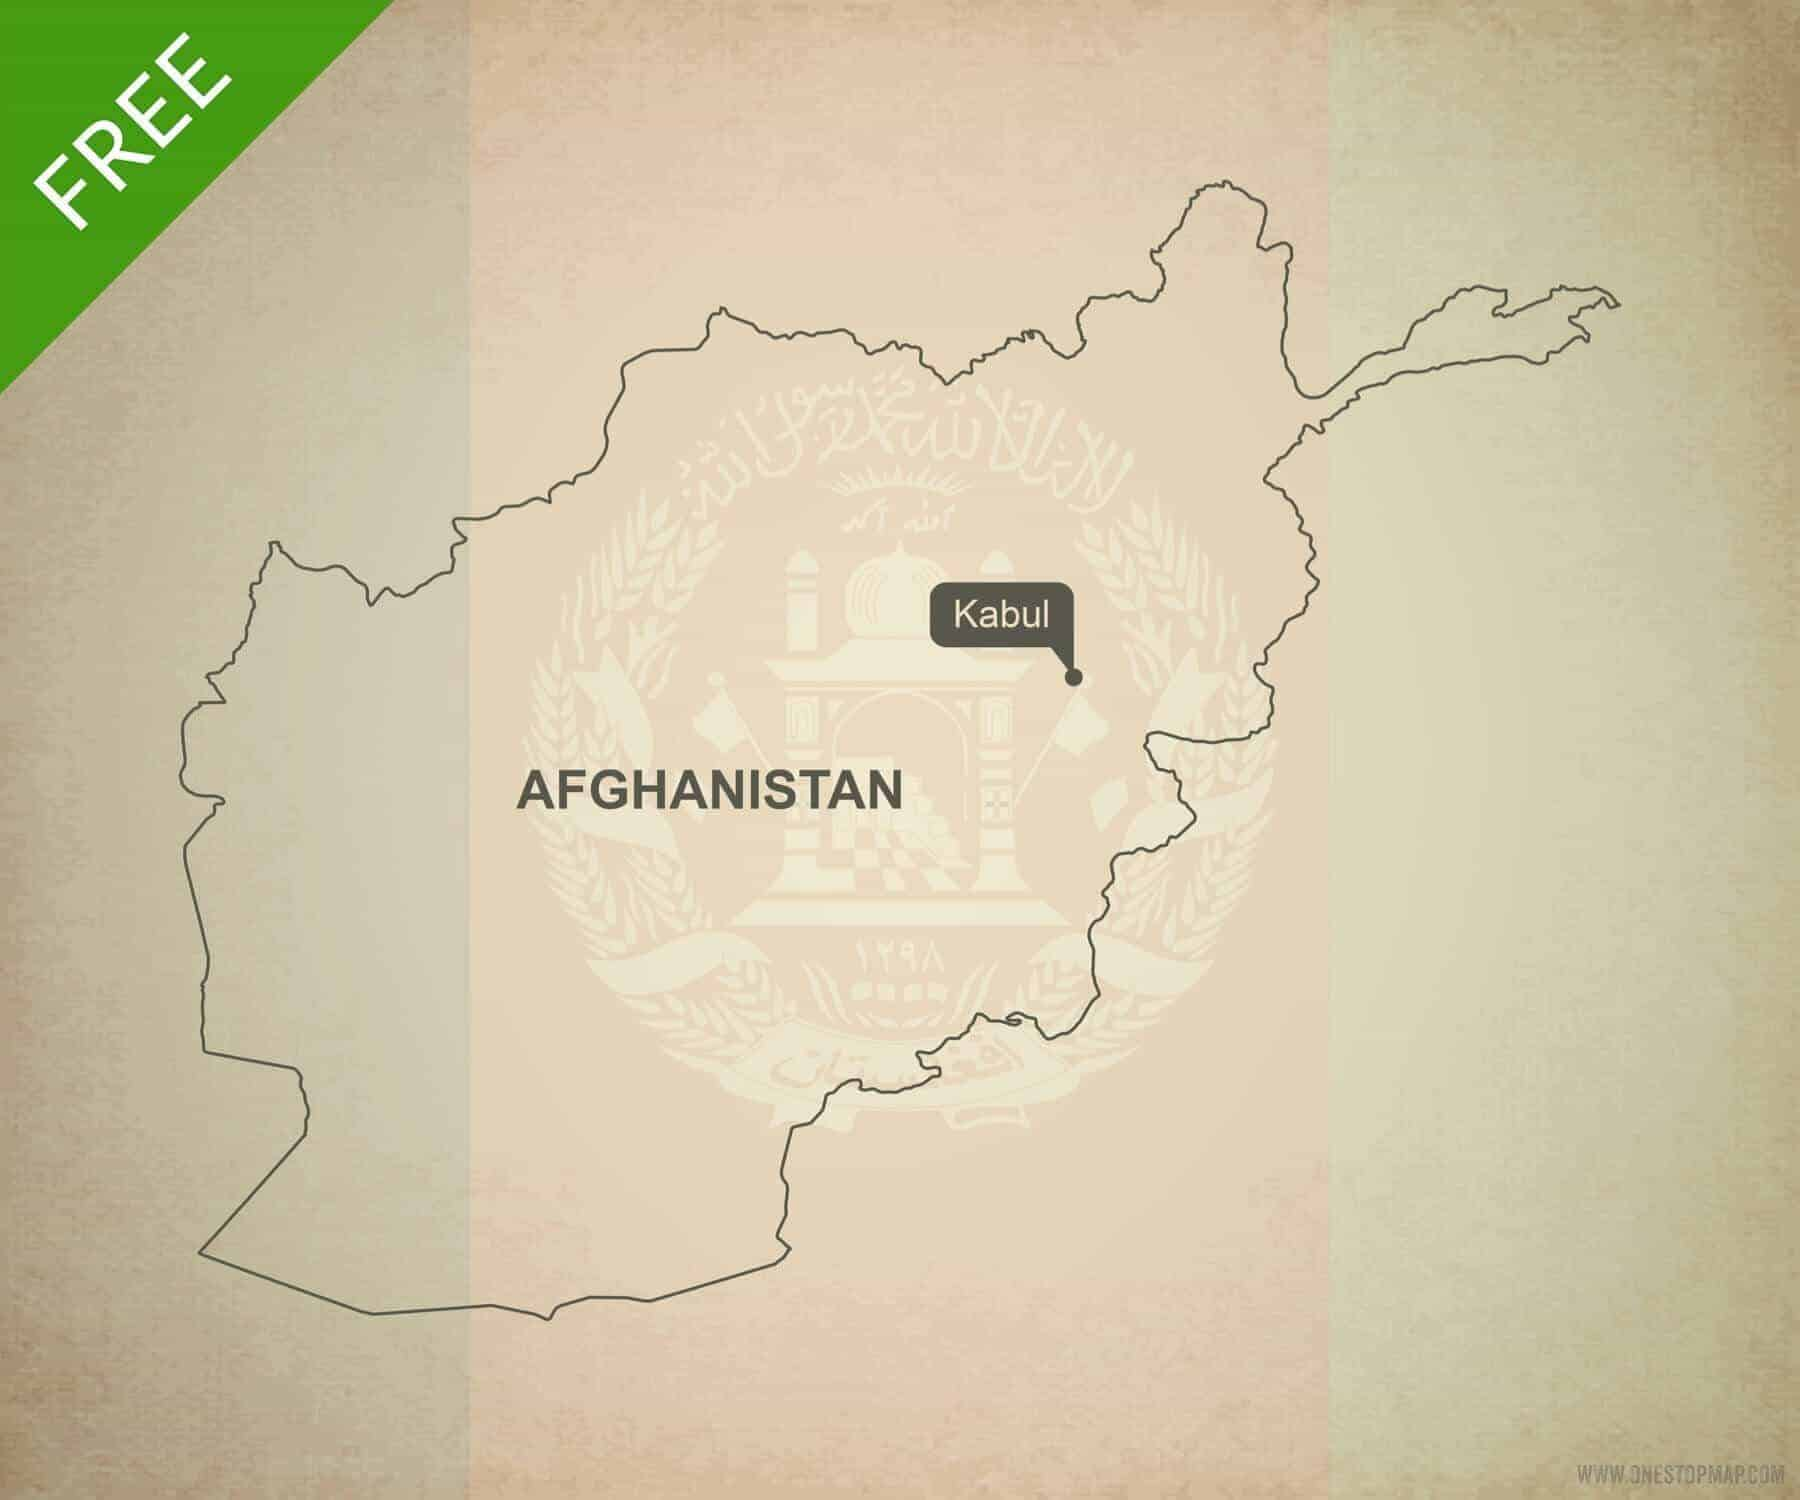 free vector map of afghanistan outline one stop map